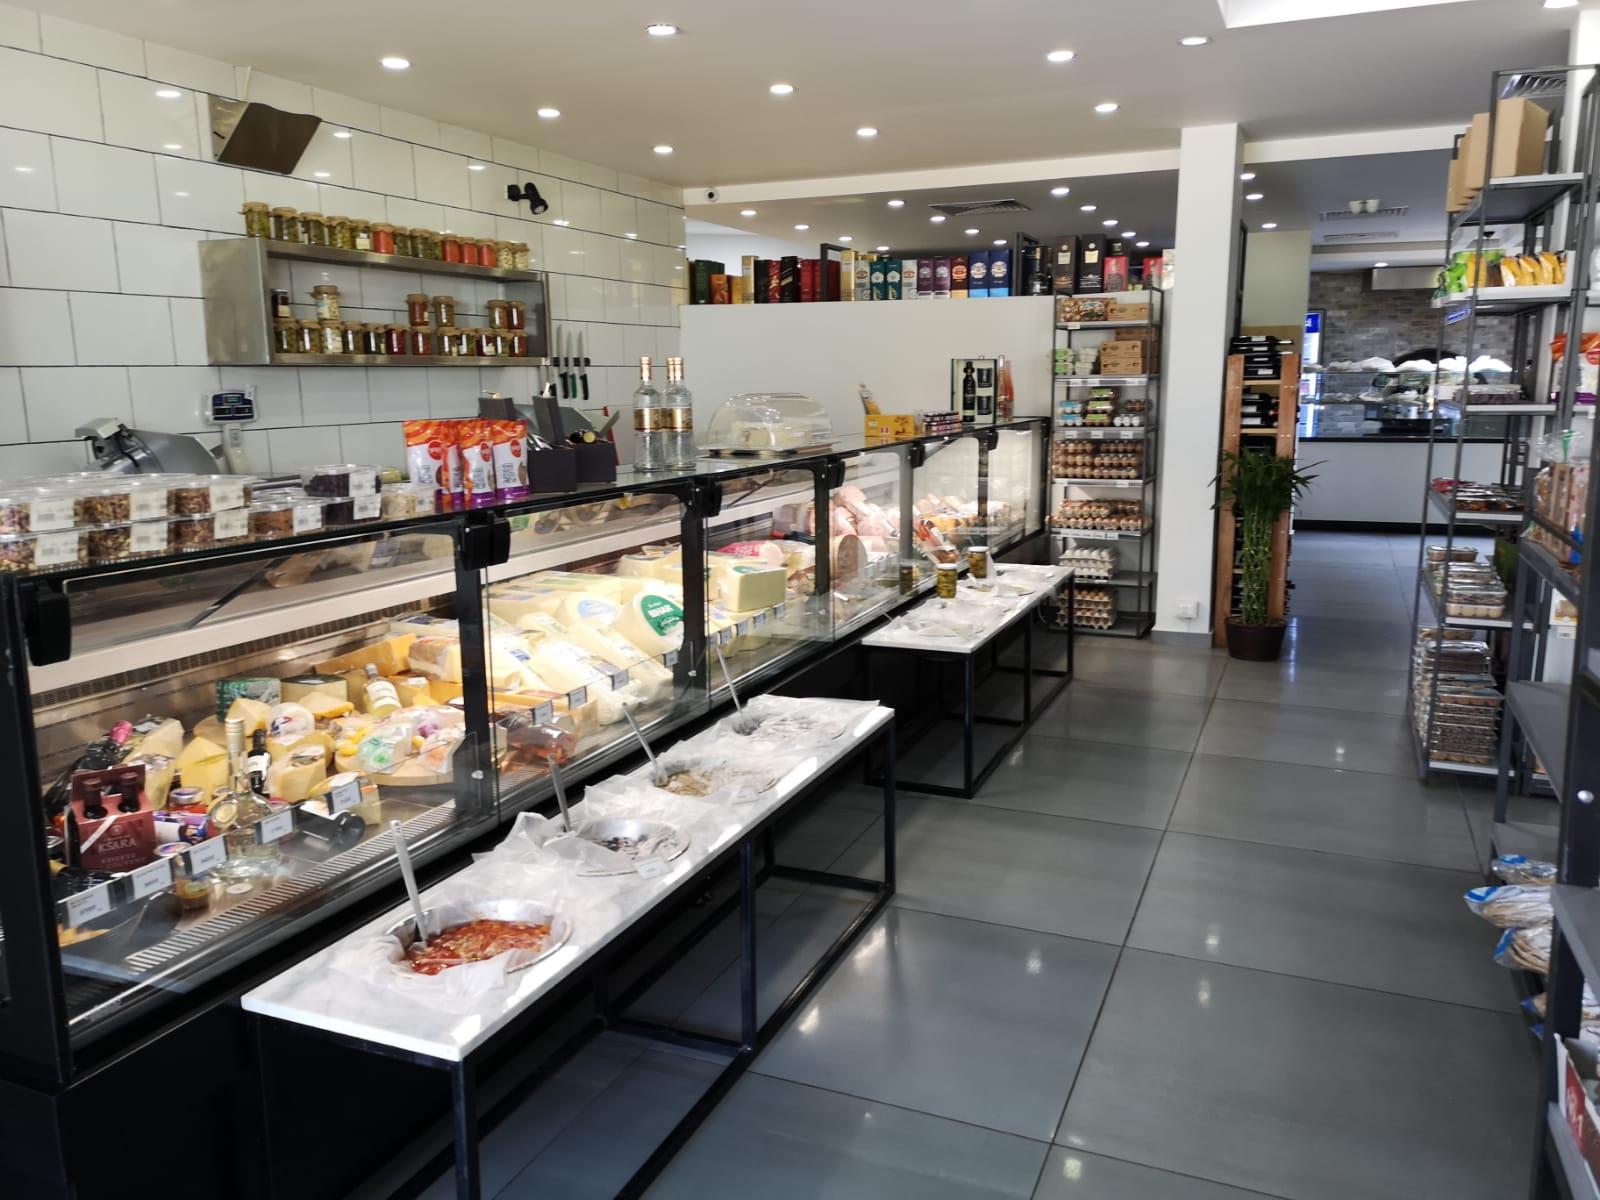 A picture of Everyday bakery café display of cheese and deli fridge